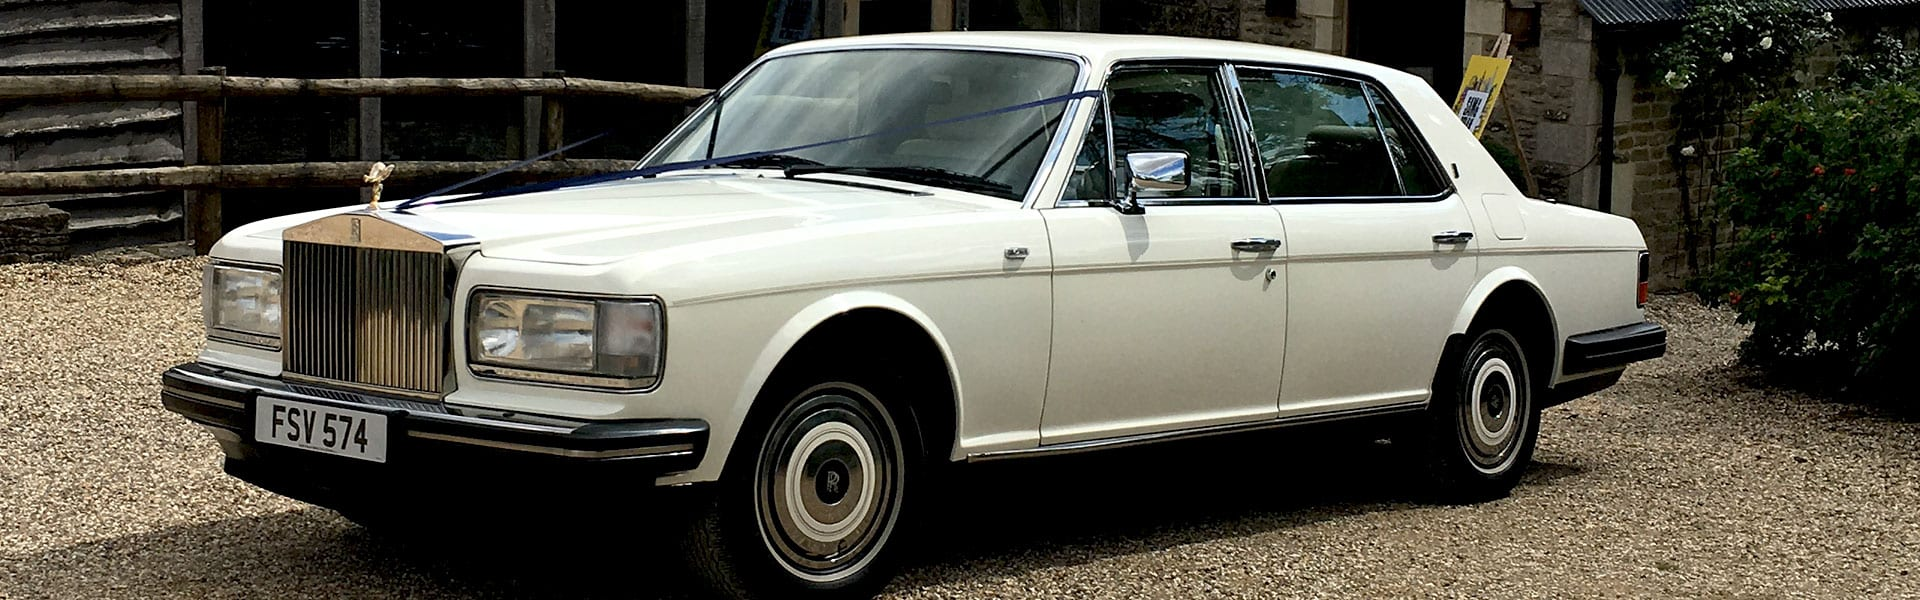 Rolls-Royce-Silver-Spur-Wedding-Car-hero-1